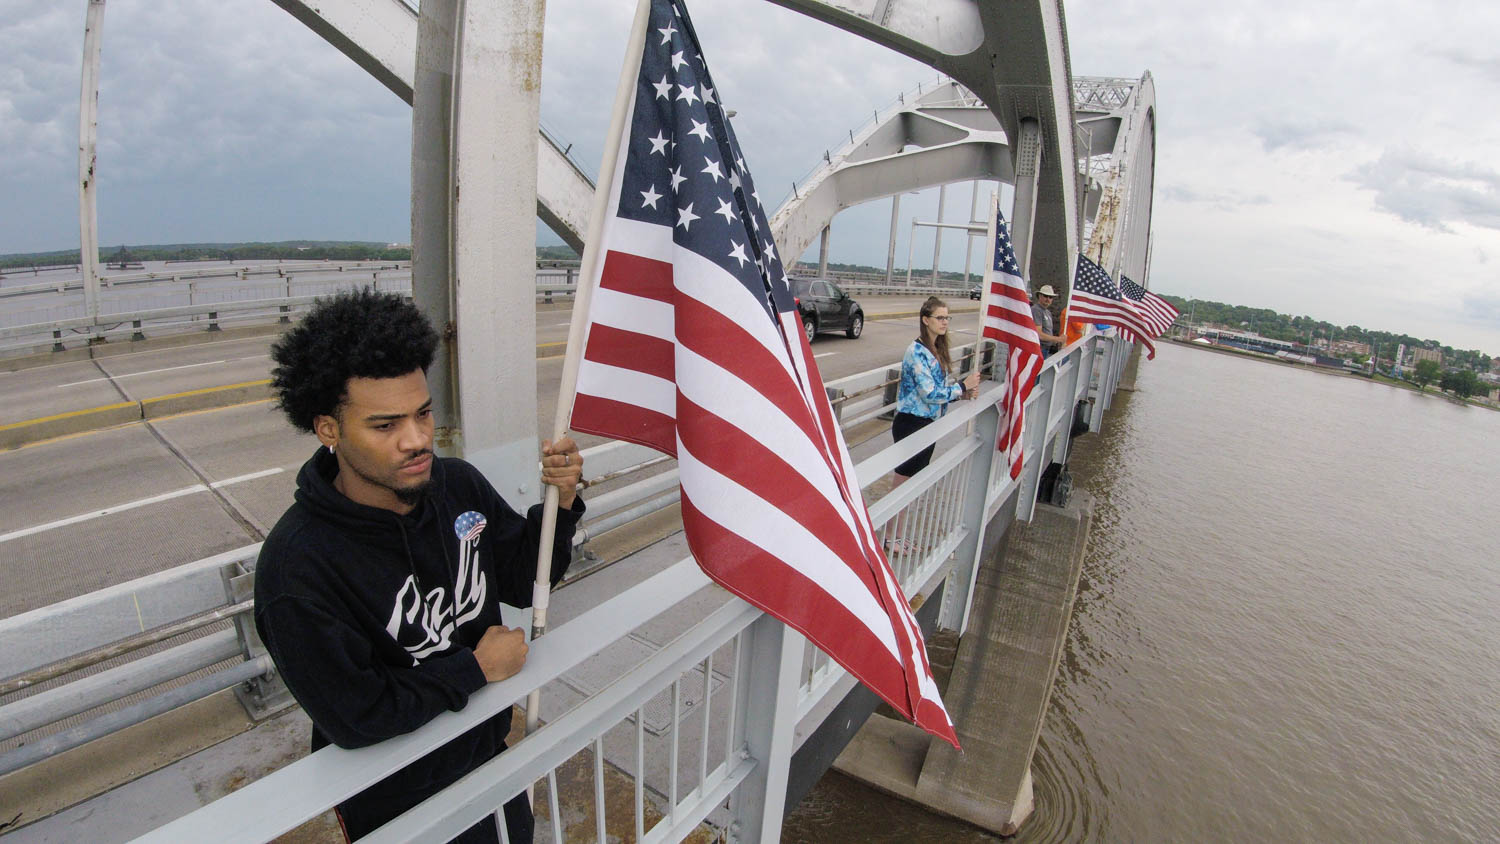 Darron Austin, of Rock Island, and approximately 200 other volunteers line the length of the Master Sgt. Stanley Talbot Memorial Bridge over the Mississippi River between Rock Island and Davenport with U.S. Flags in honor of Flag Day Thursday, June 14, 2018. (Todd Mizener - Dispatch/Argus)